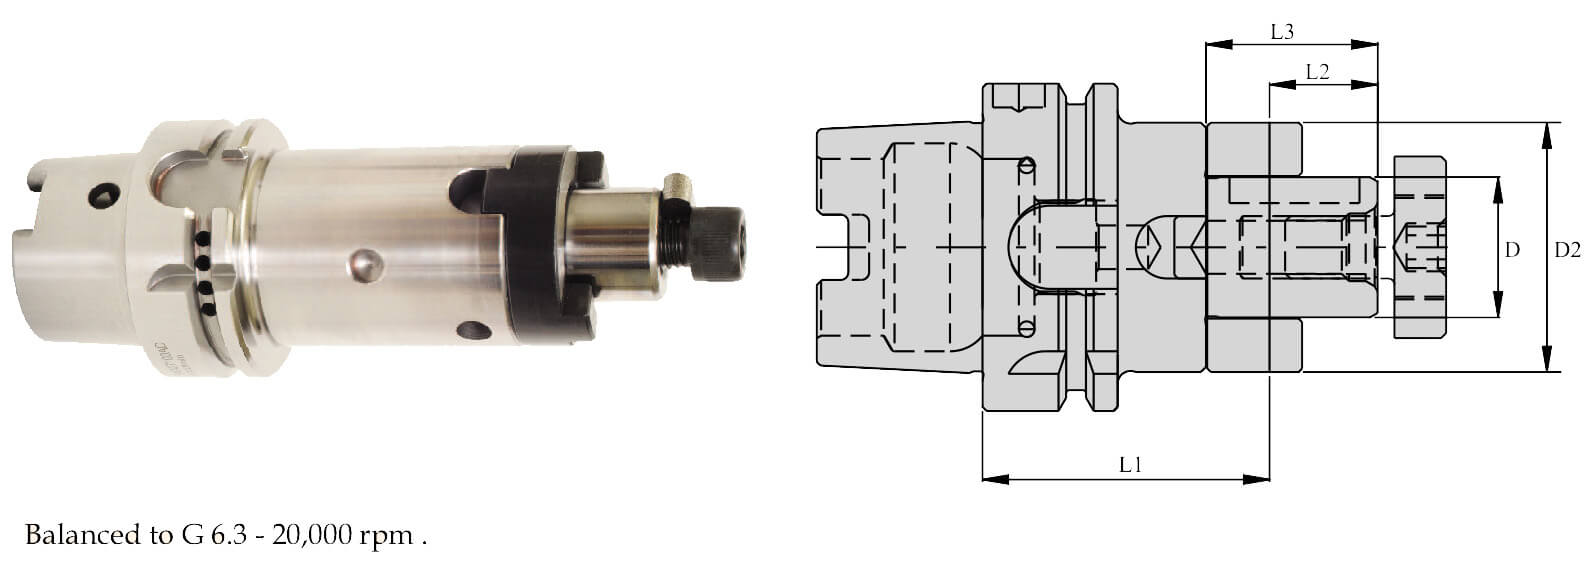 HSK-A 100 CSMA22 065 CombiShell Mill Adaptor (Balanced to G 6.3 20000 RPM) (DIN 6358)